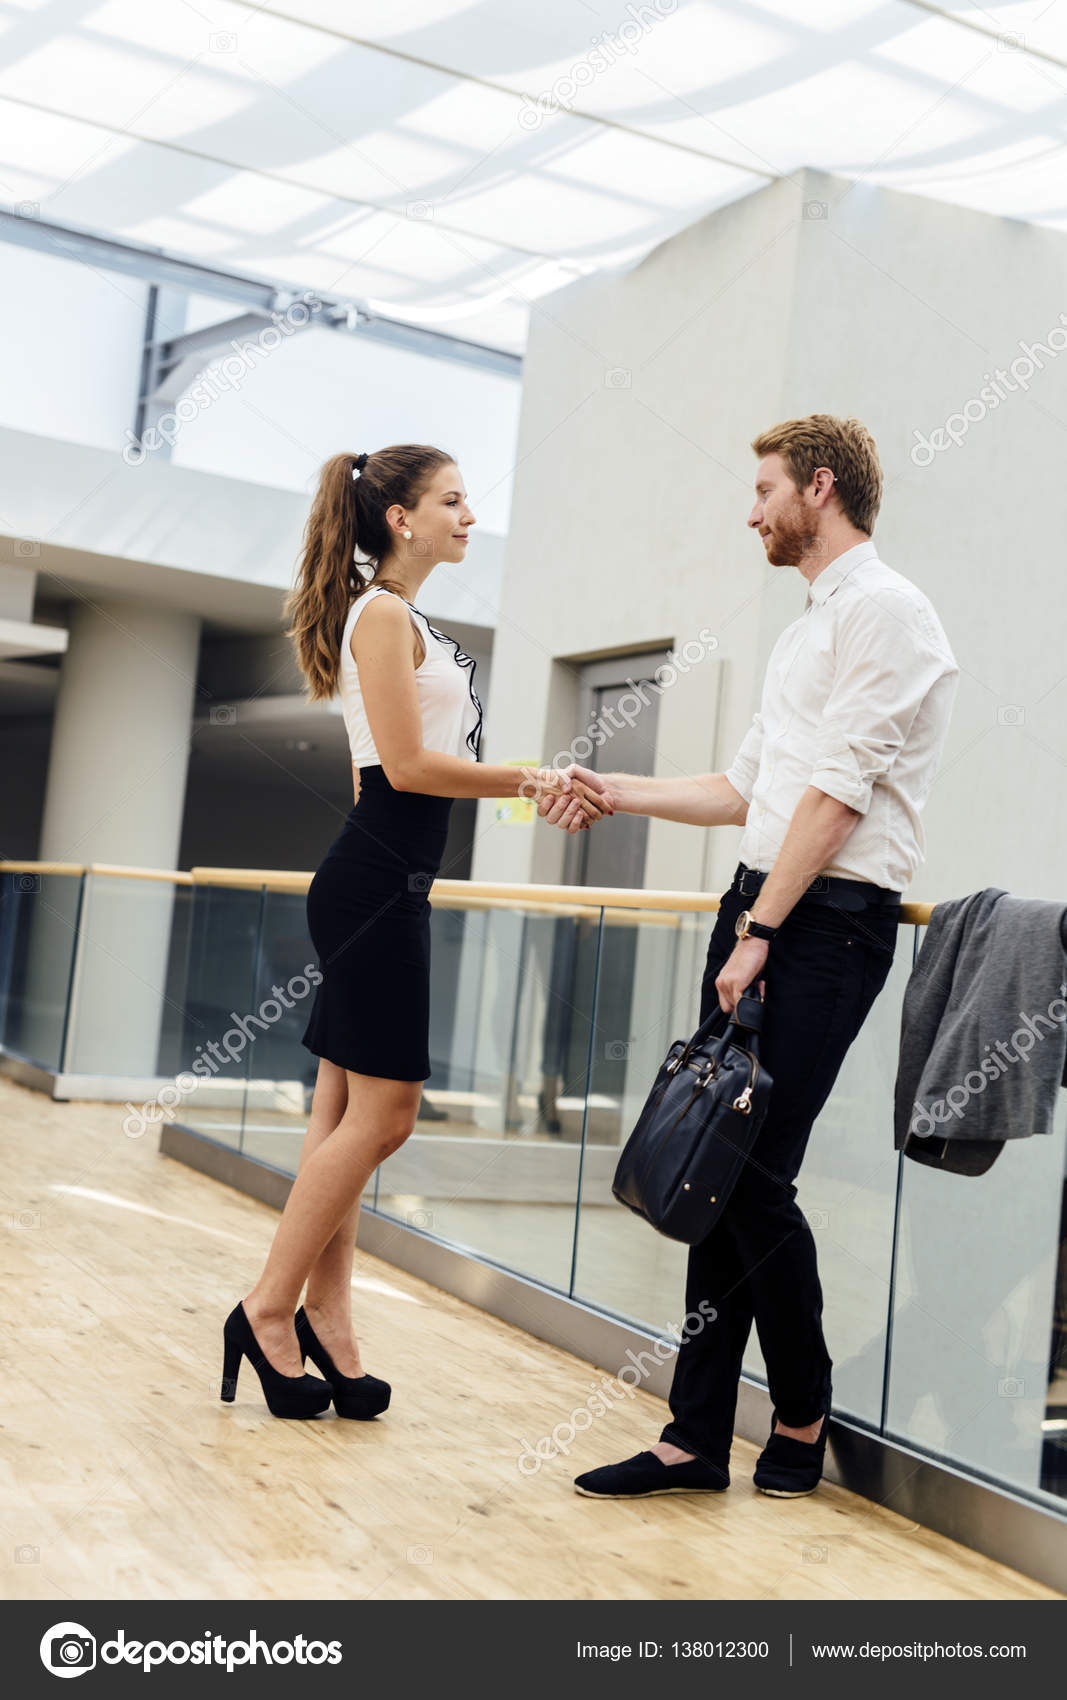 Business People Greeting Each Other Stock Photo Nd3000 138012300